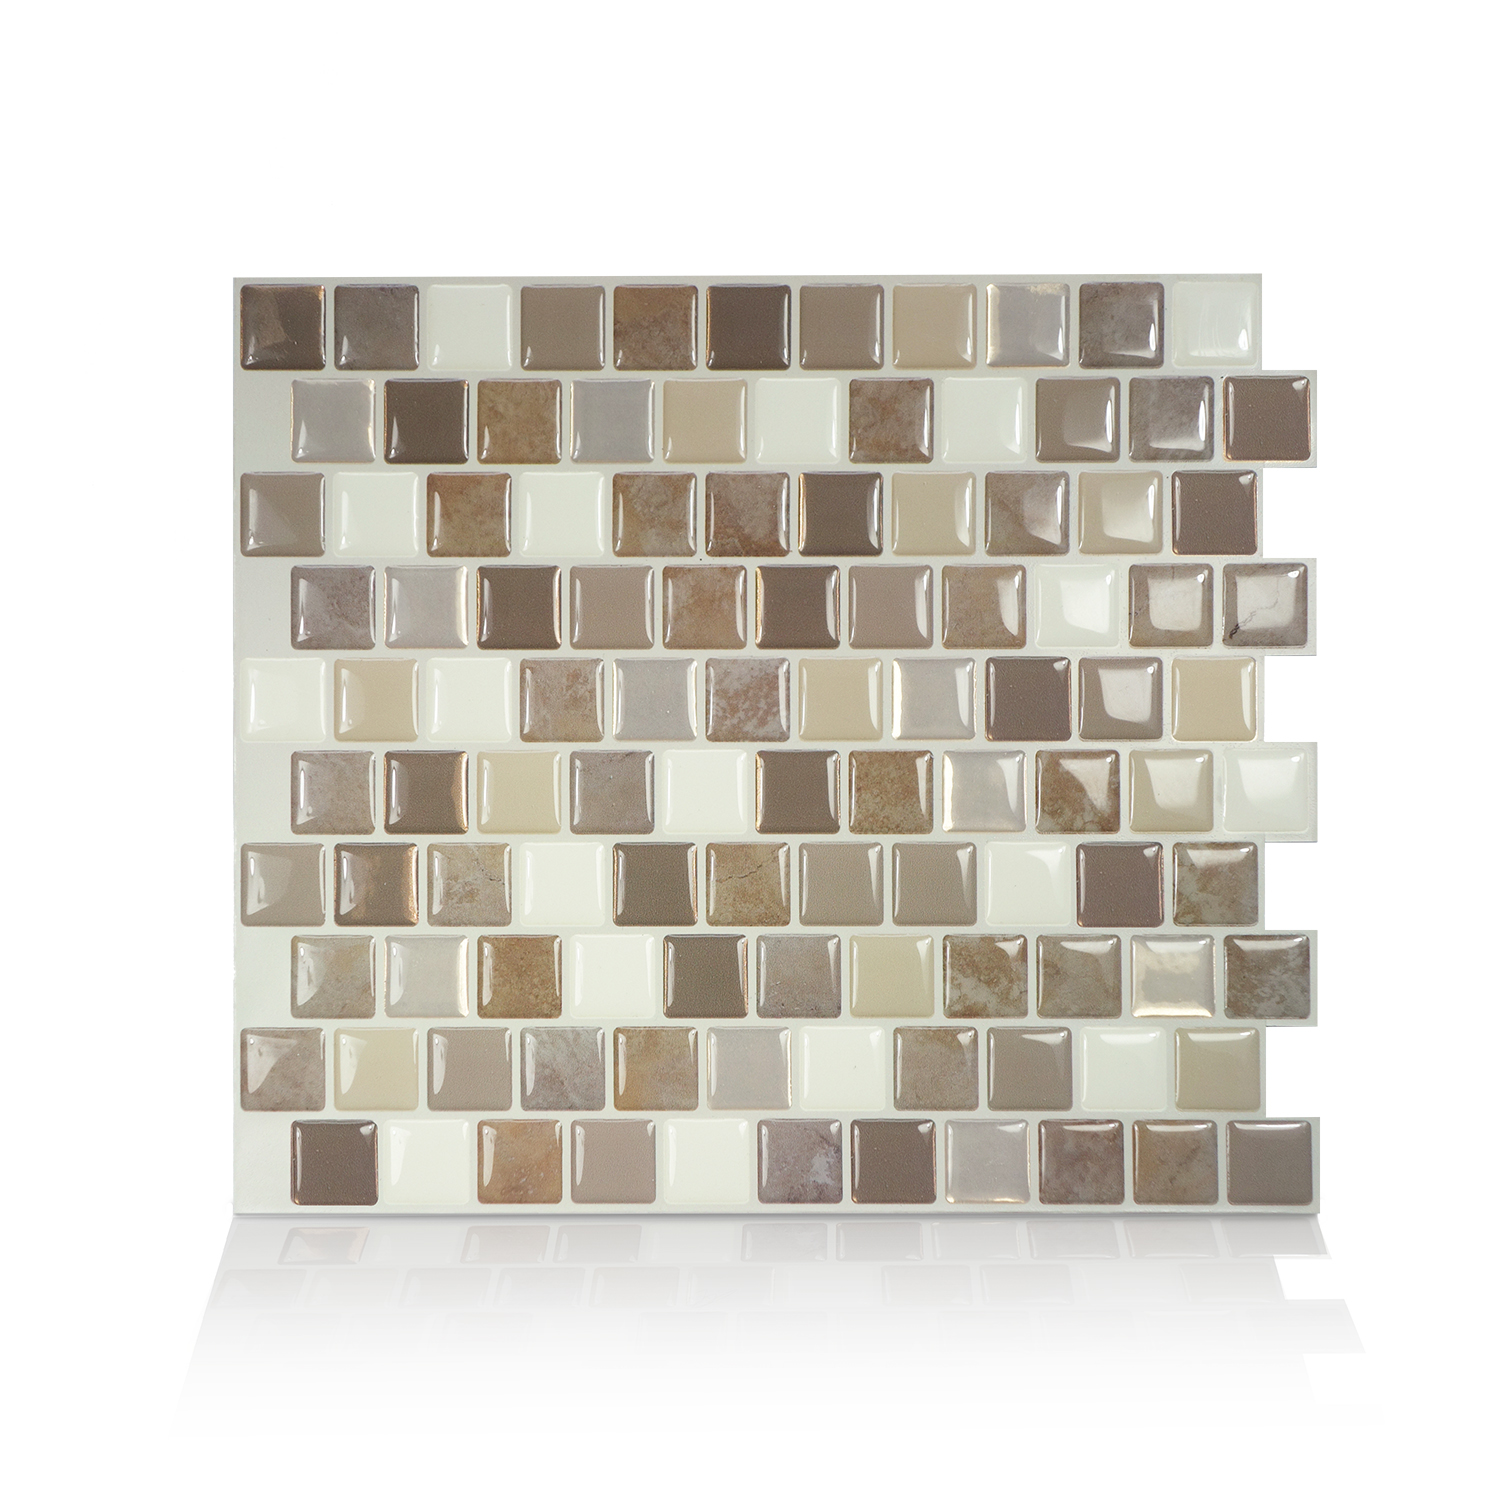 Smart Tiles 10.20 in x 8.85 in Peel and Stick Self-Adhesive Mosaic Backsplash Wall Tile - Brixia Pardo (each)